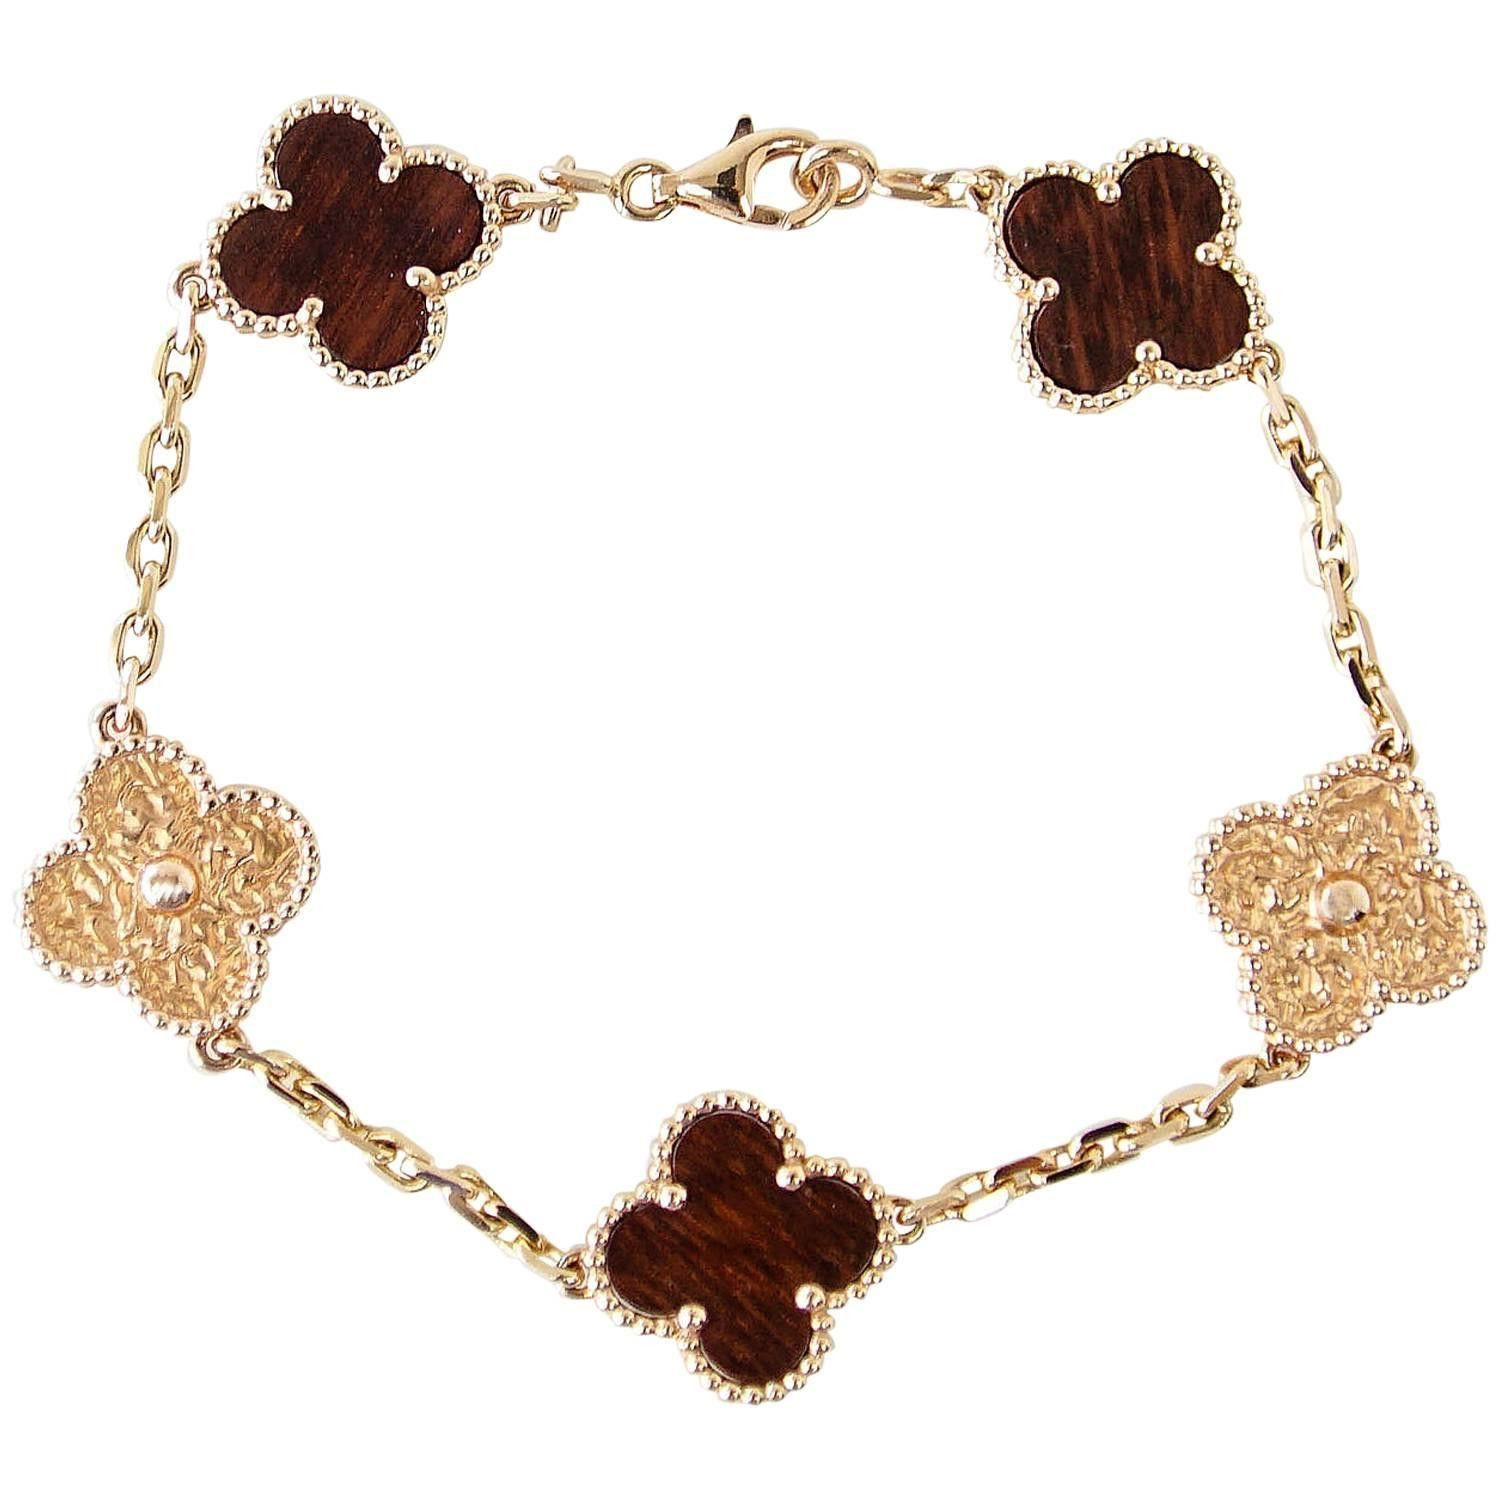 Van cleef and arpels bracelet alhambra collection k rose gold